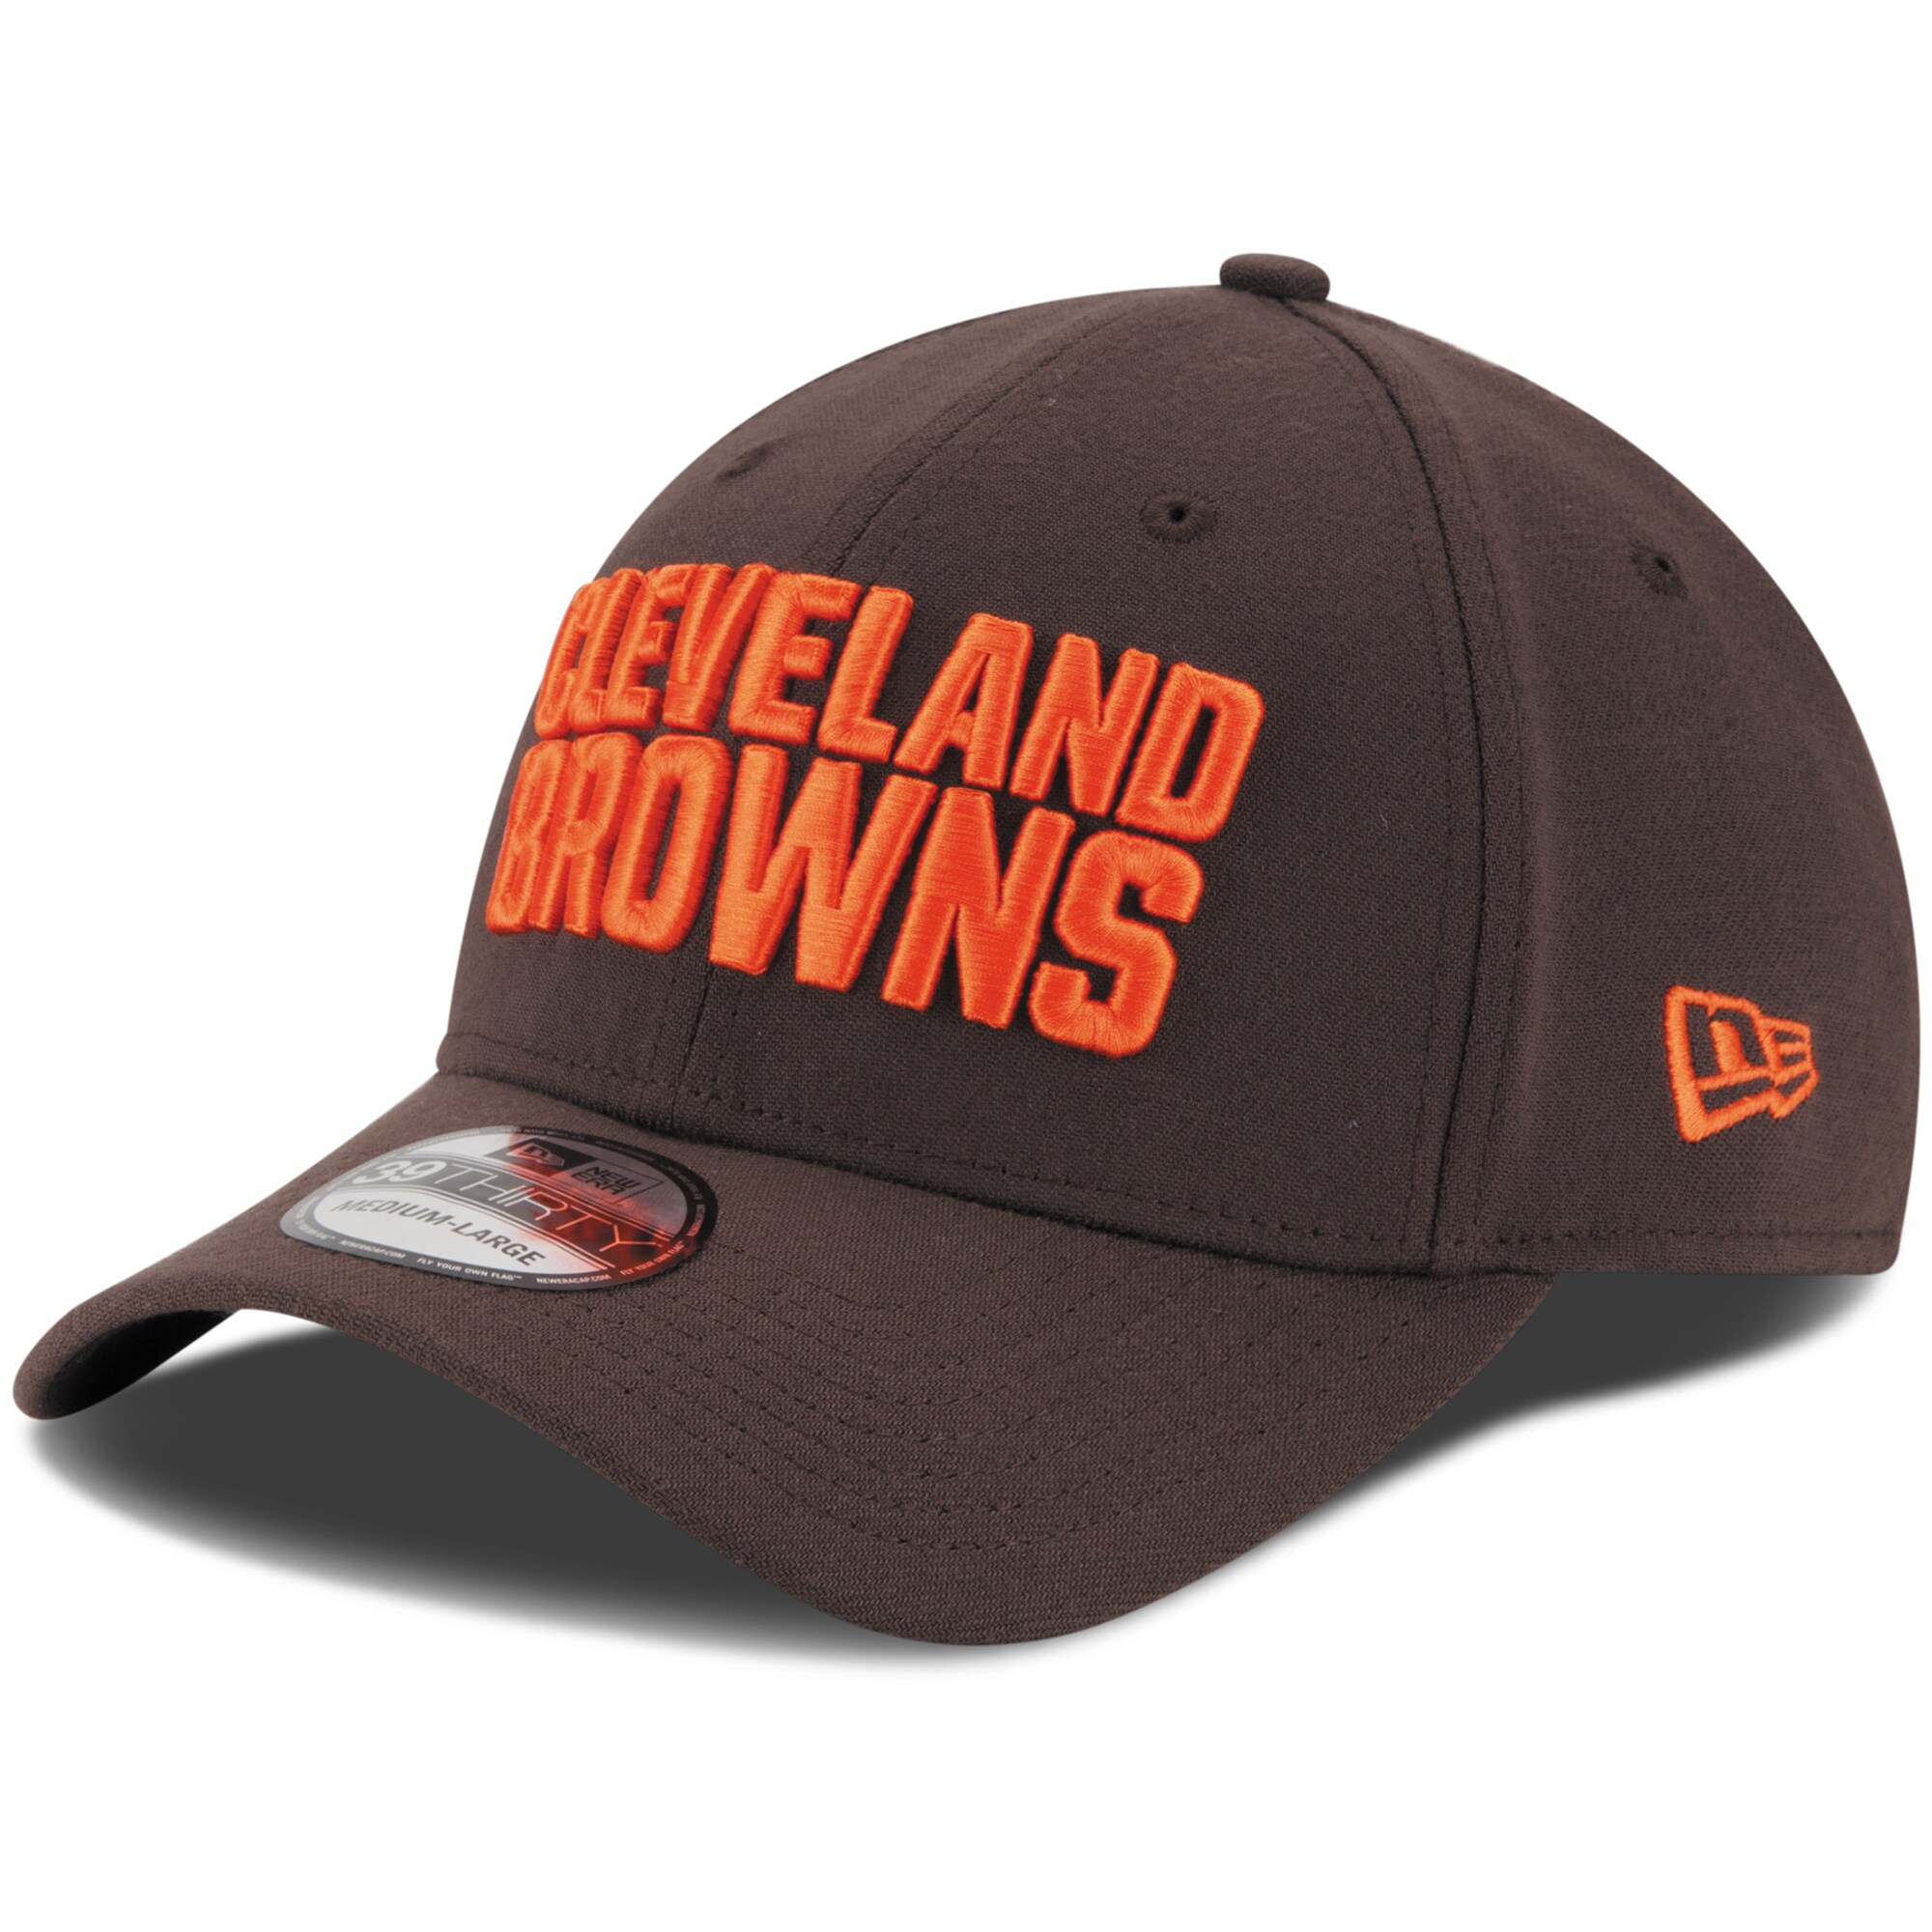 Cleveland Browns New Era Youth Team Classic 39THIRTY Flex Hat - Brown